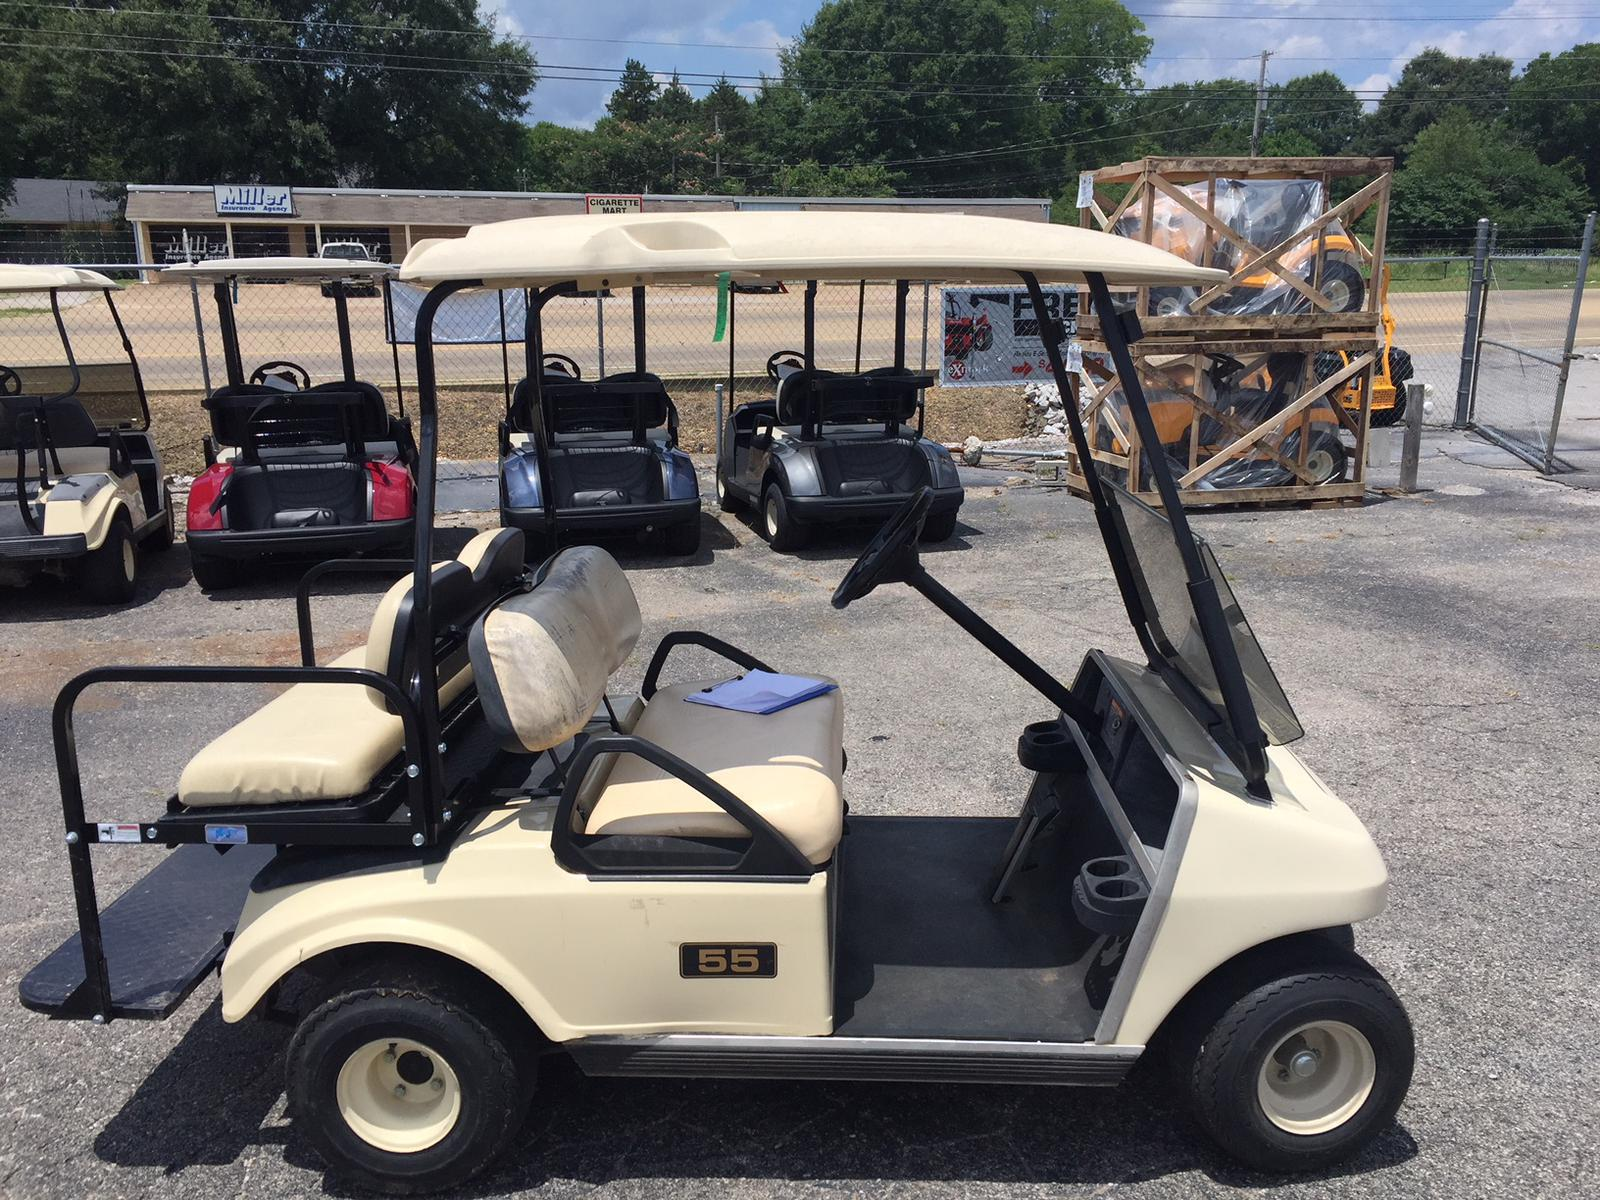 Club Car USED-2002 Club Car Golf Cart with Back Seat (Gas) for sale Golf Carts Maine Sale on golf cort, golf carts with guns, golf store sale, golf buggy, hot tub sale, bus sale, carport sale,